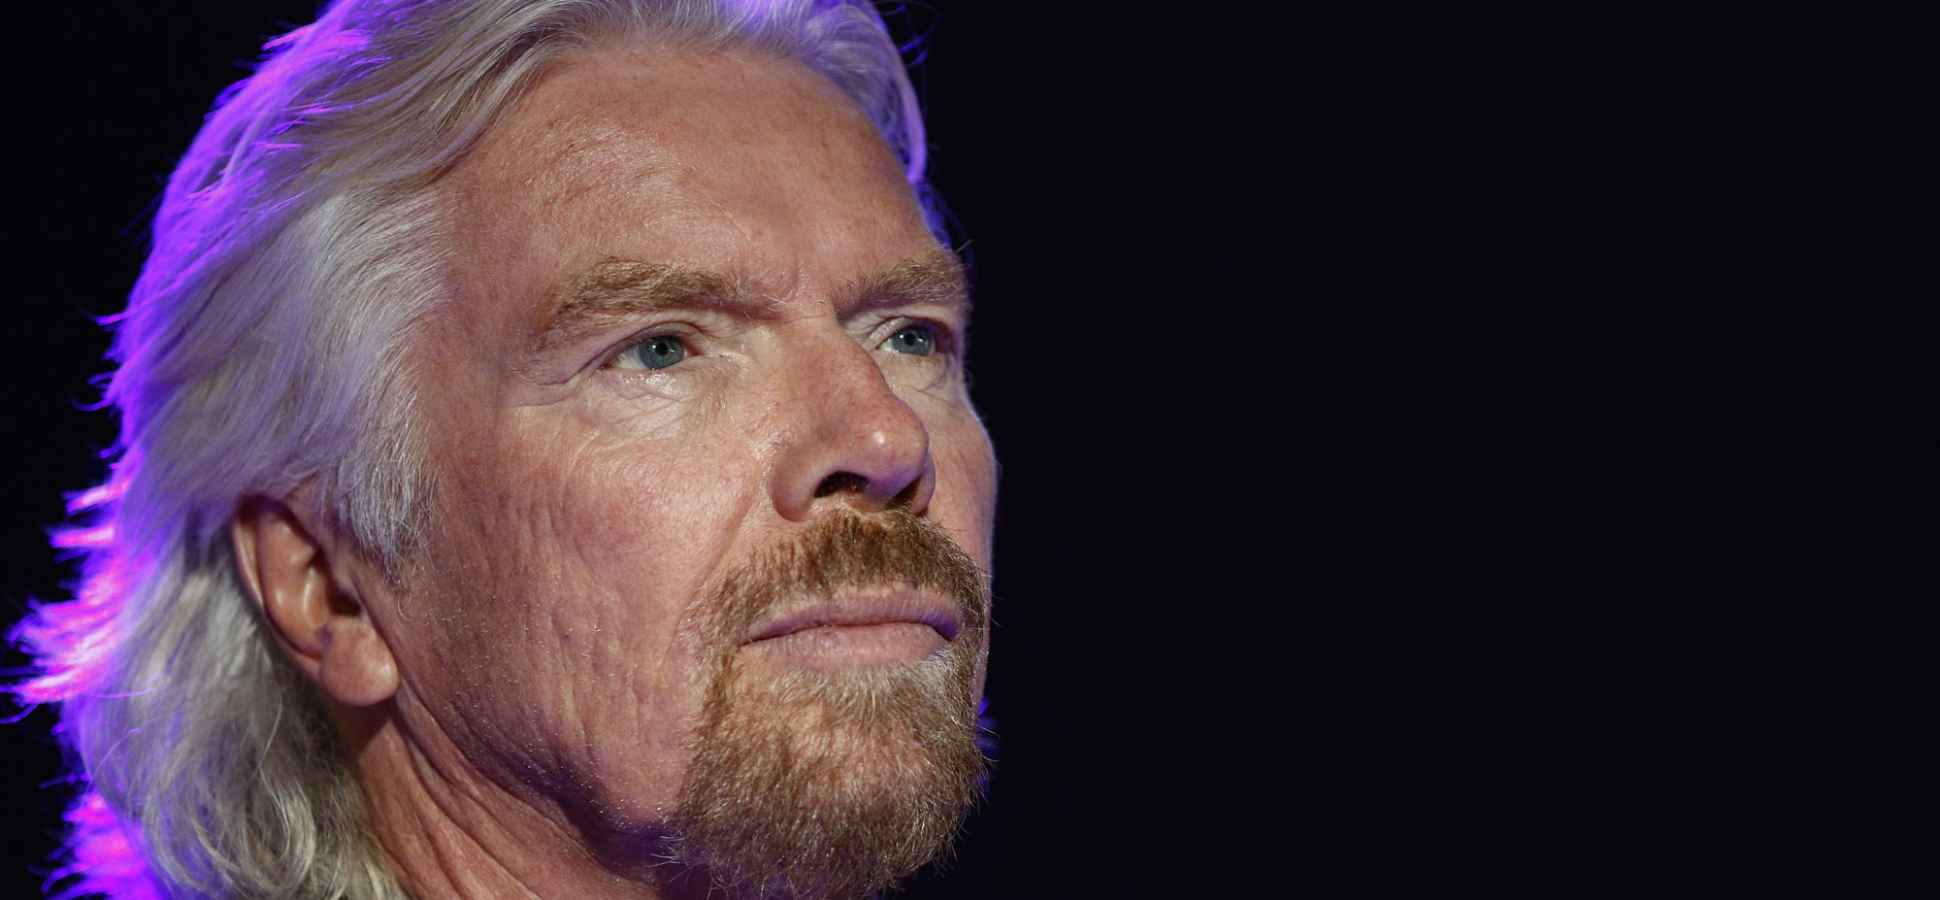 These Are the Startups That Richard Branson Is Backing With His Billions